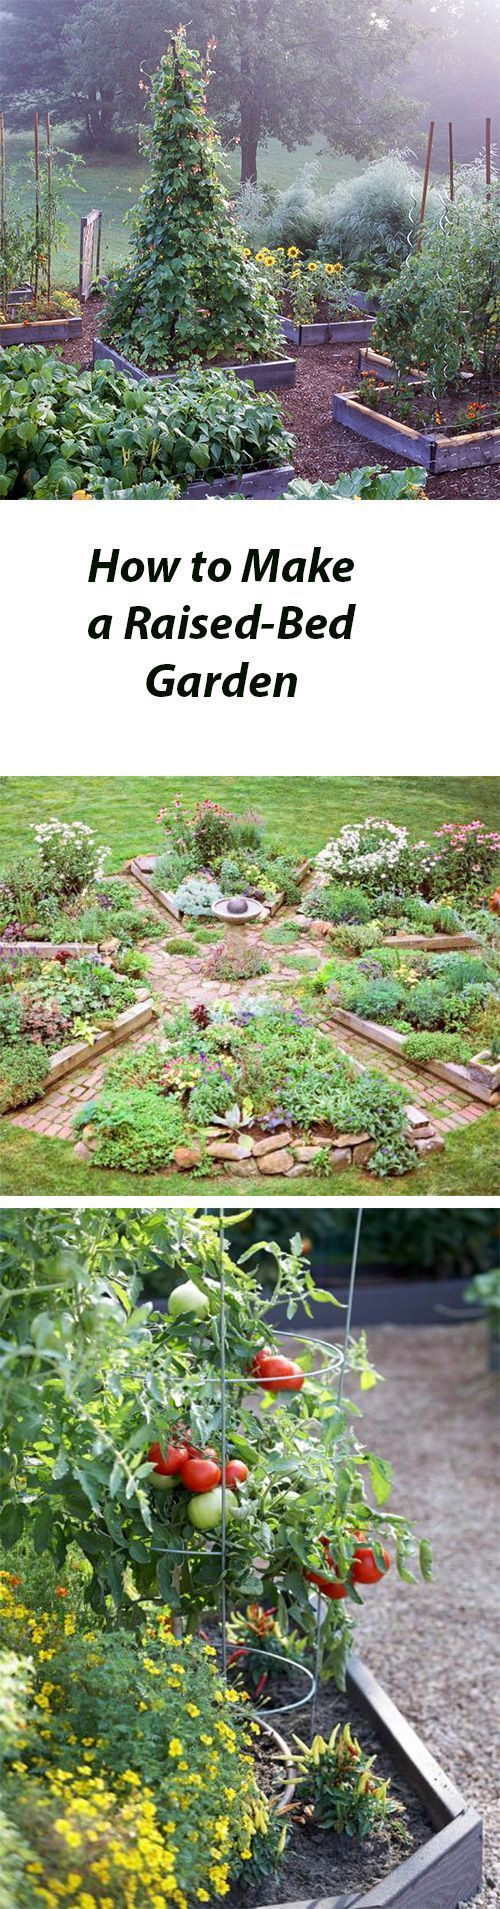 Tips For Building A Great Raised Bed Garden For Flowers Or Vegetables: Http: